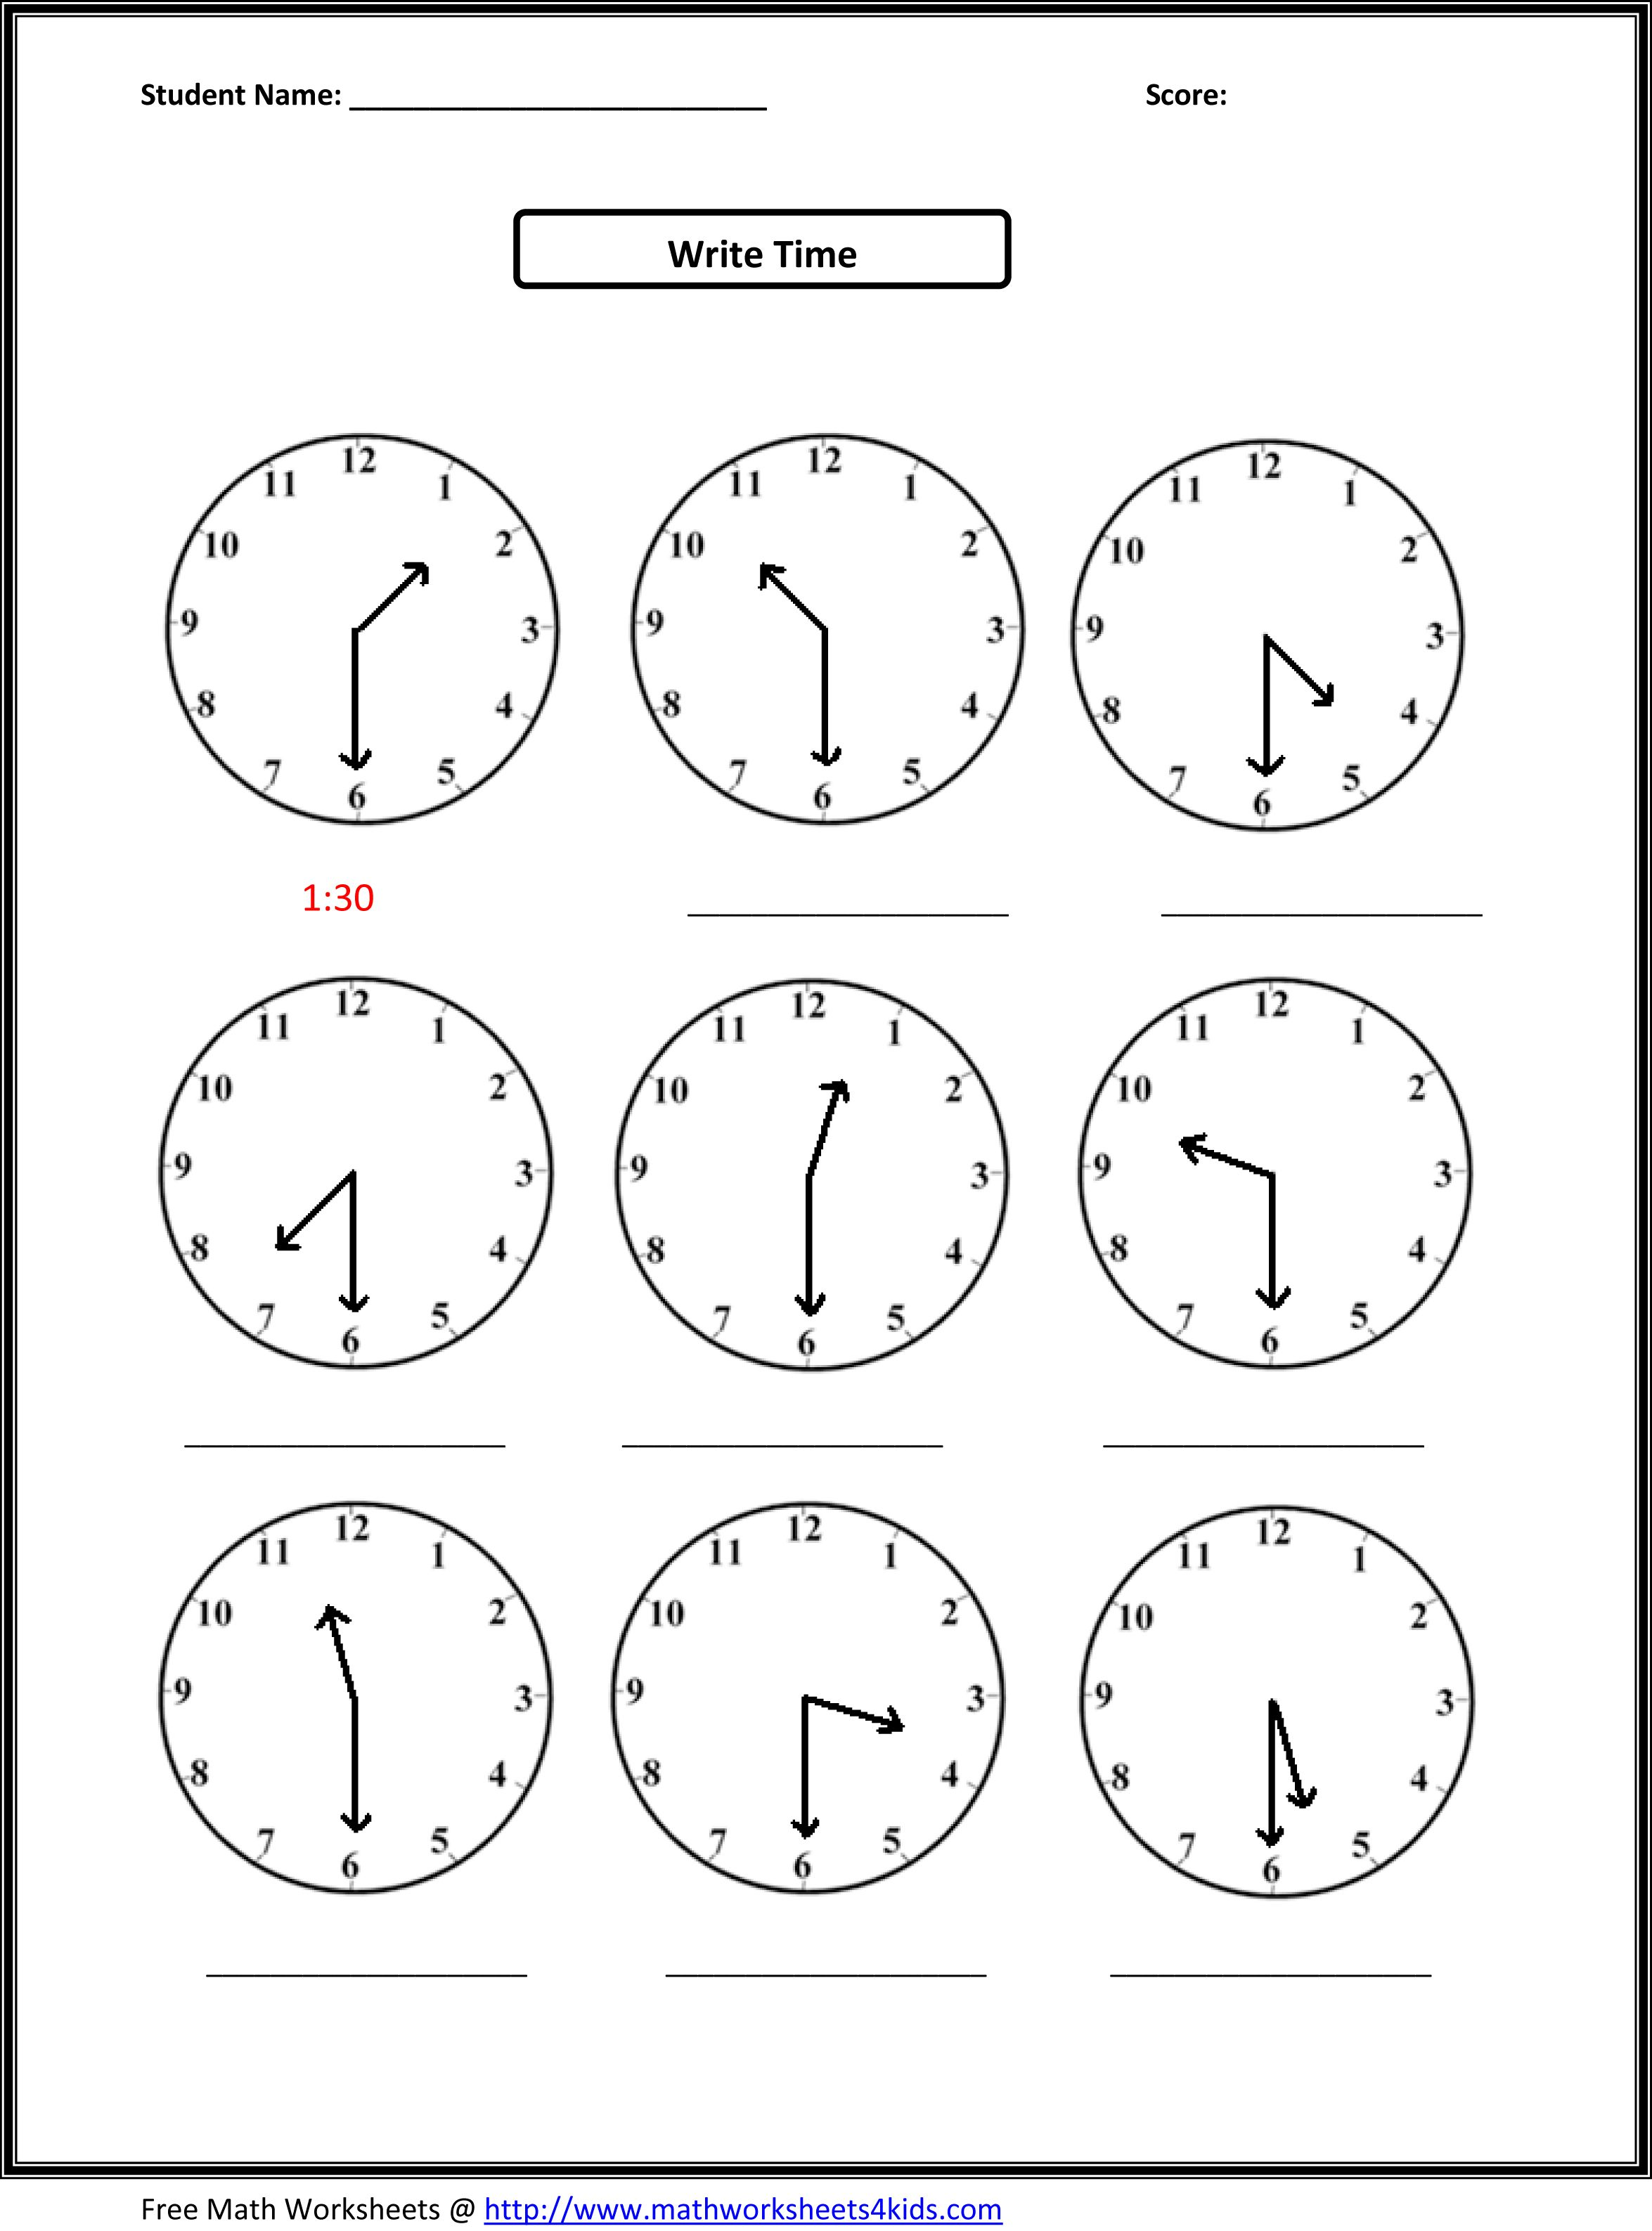 Proatmealus  Ravishing Worksheet On Time For Grade   Reocurent With Handsome Free Printable Telling Time Worksheets Nd Grade  Reocurent With Astounding Map Grid Worksheet Also Simple Machines For Kids Worksheets In Addition Free Kumon Worksheets And Time Signature Worksheets As Well As Getting To Know Students Worksheet Additionally Solving Equations Printable Worksheets From Reocurentcom With Proatmealus  Handsome Worksheet On Time For Grade   Reocurent With Astounding Free Printable Telling Time Worksheets Nd Grade  Reocurent And Ravishing Map Grid Worksheet Also Simple Machines For Kids Worksheets In Addition Free Kumon Worksheets From Reocurentcom